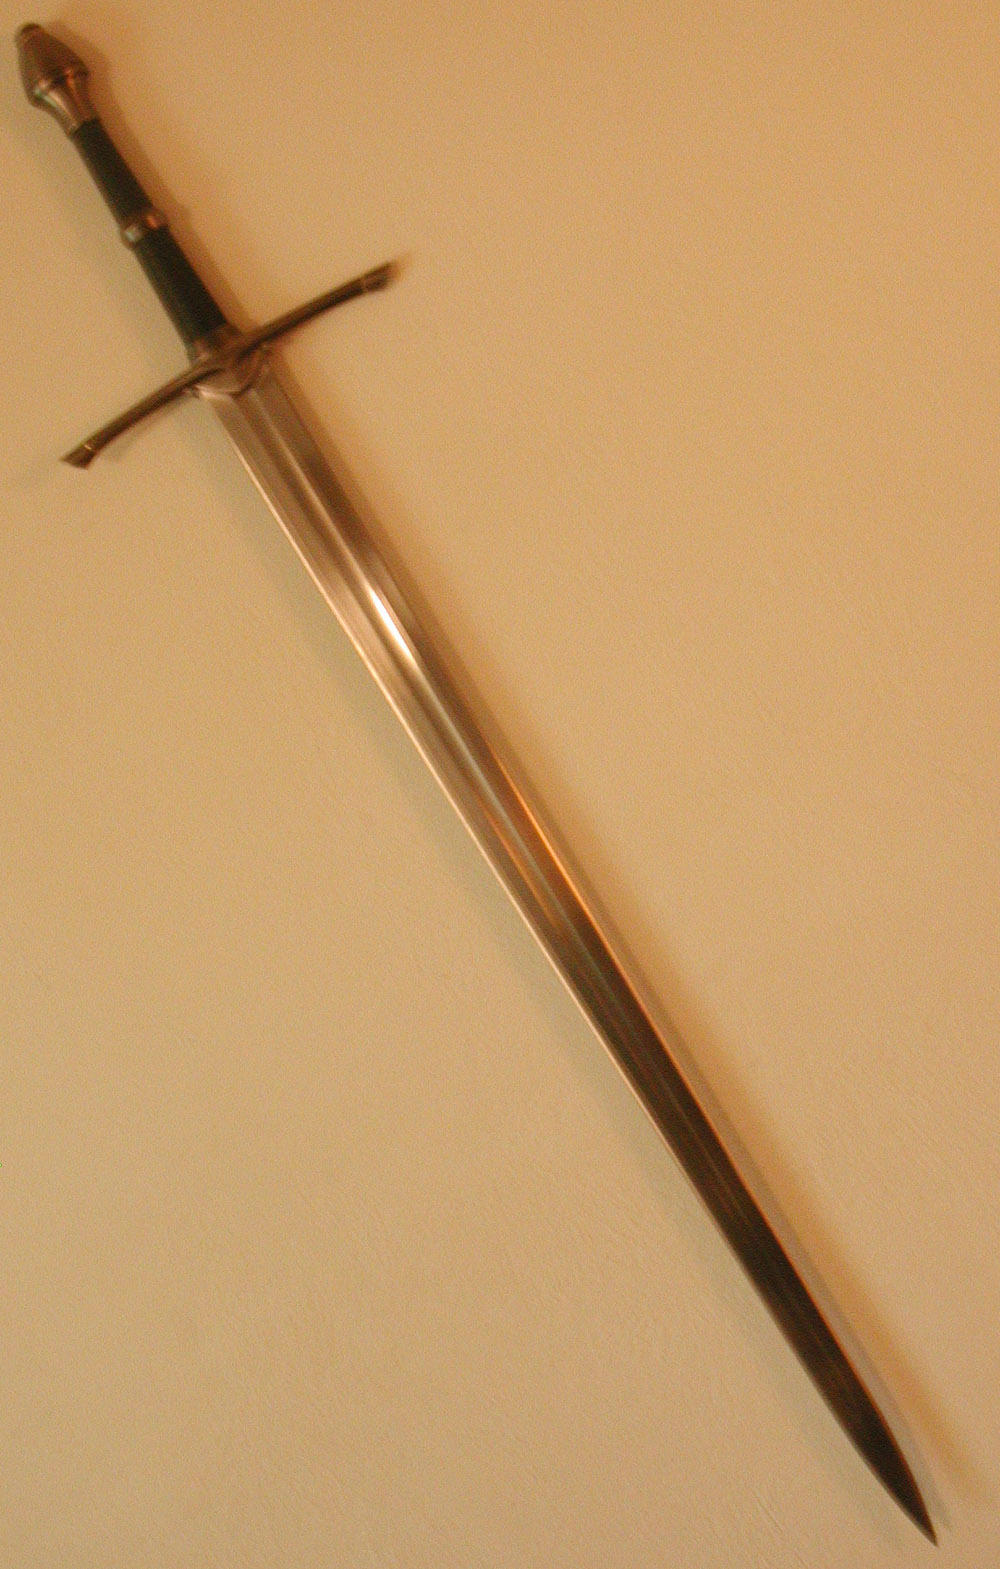 Strider's Sword by lockstock